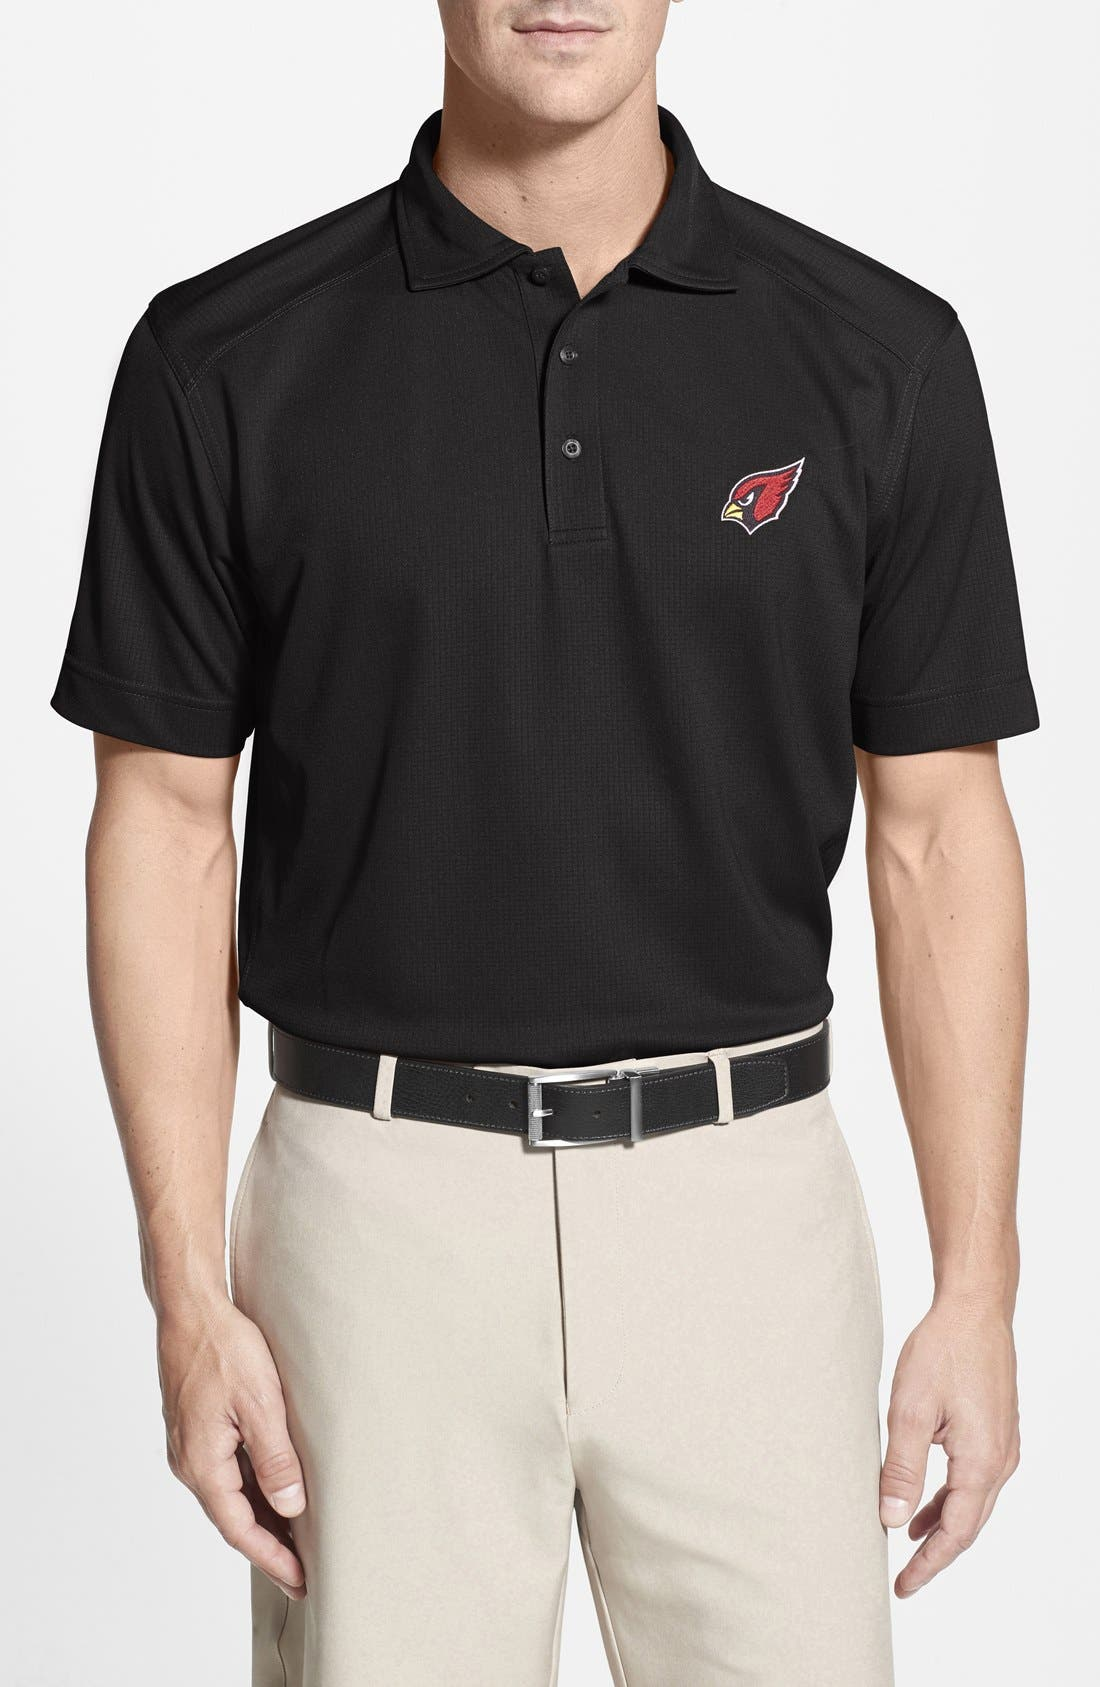 Cutter & Buck Arizona Cardinals - Genre DryTec Moisture Wicking Polo